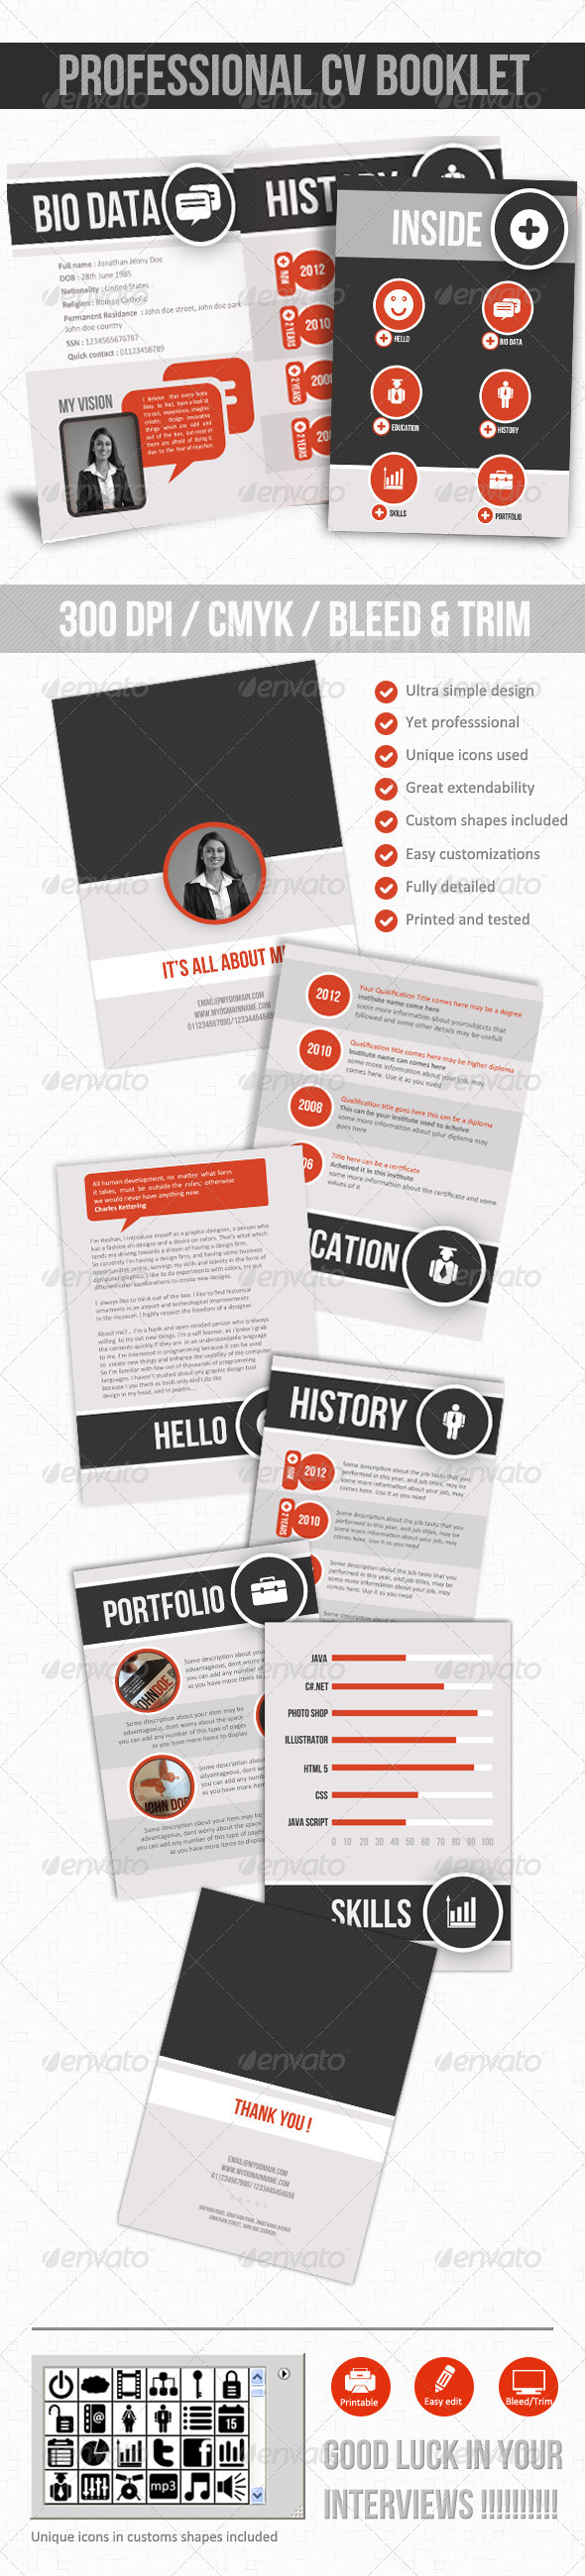 GraphicRiver Professional CV Booklet 2383410